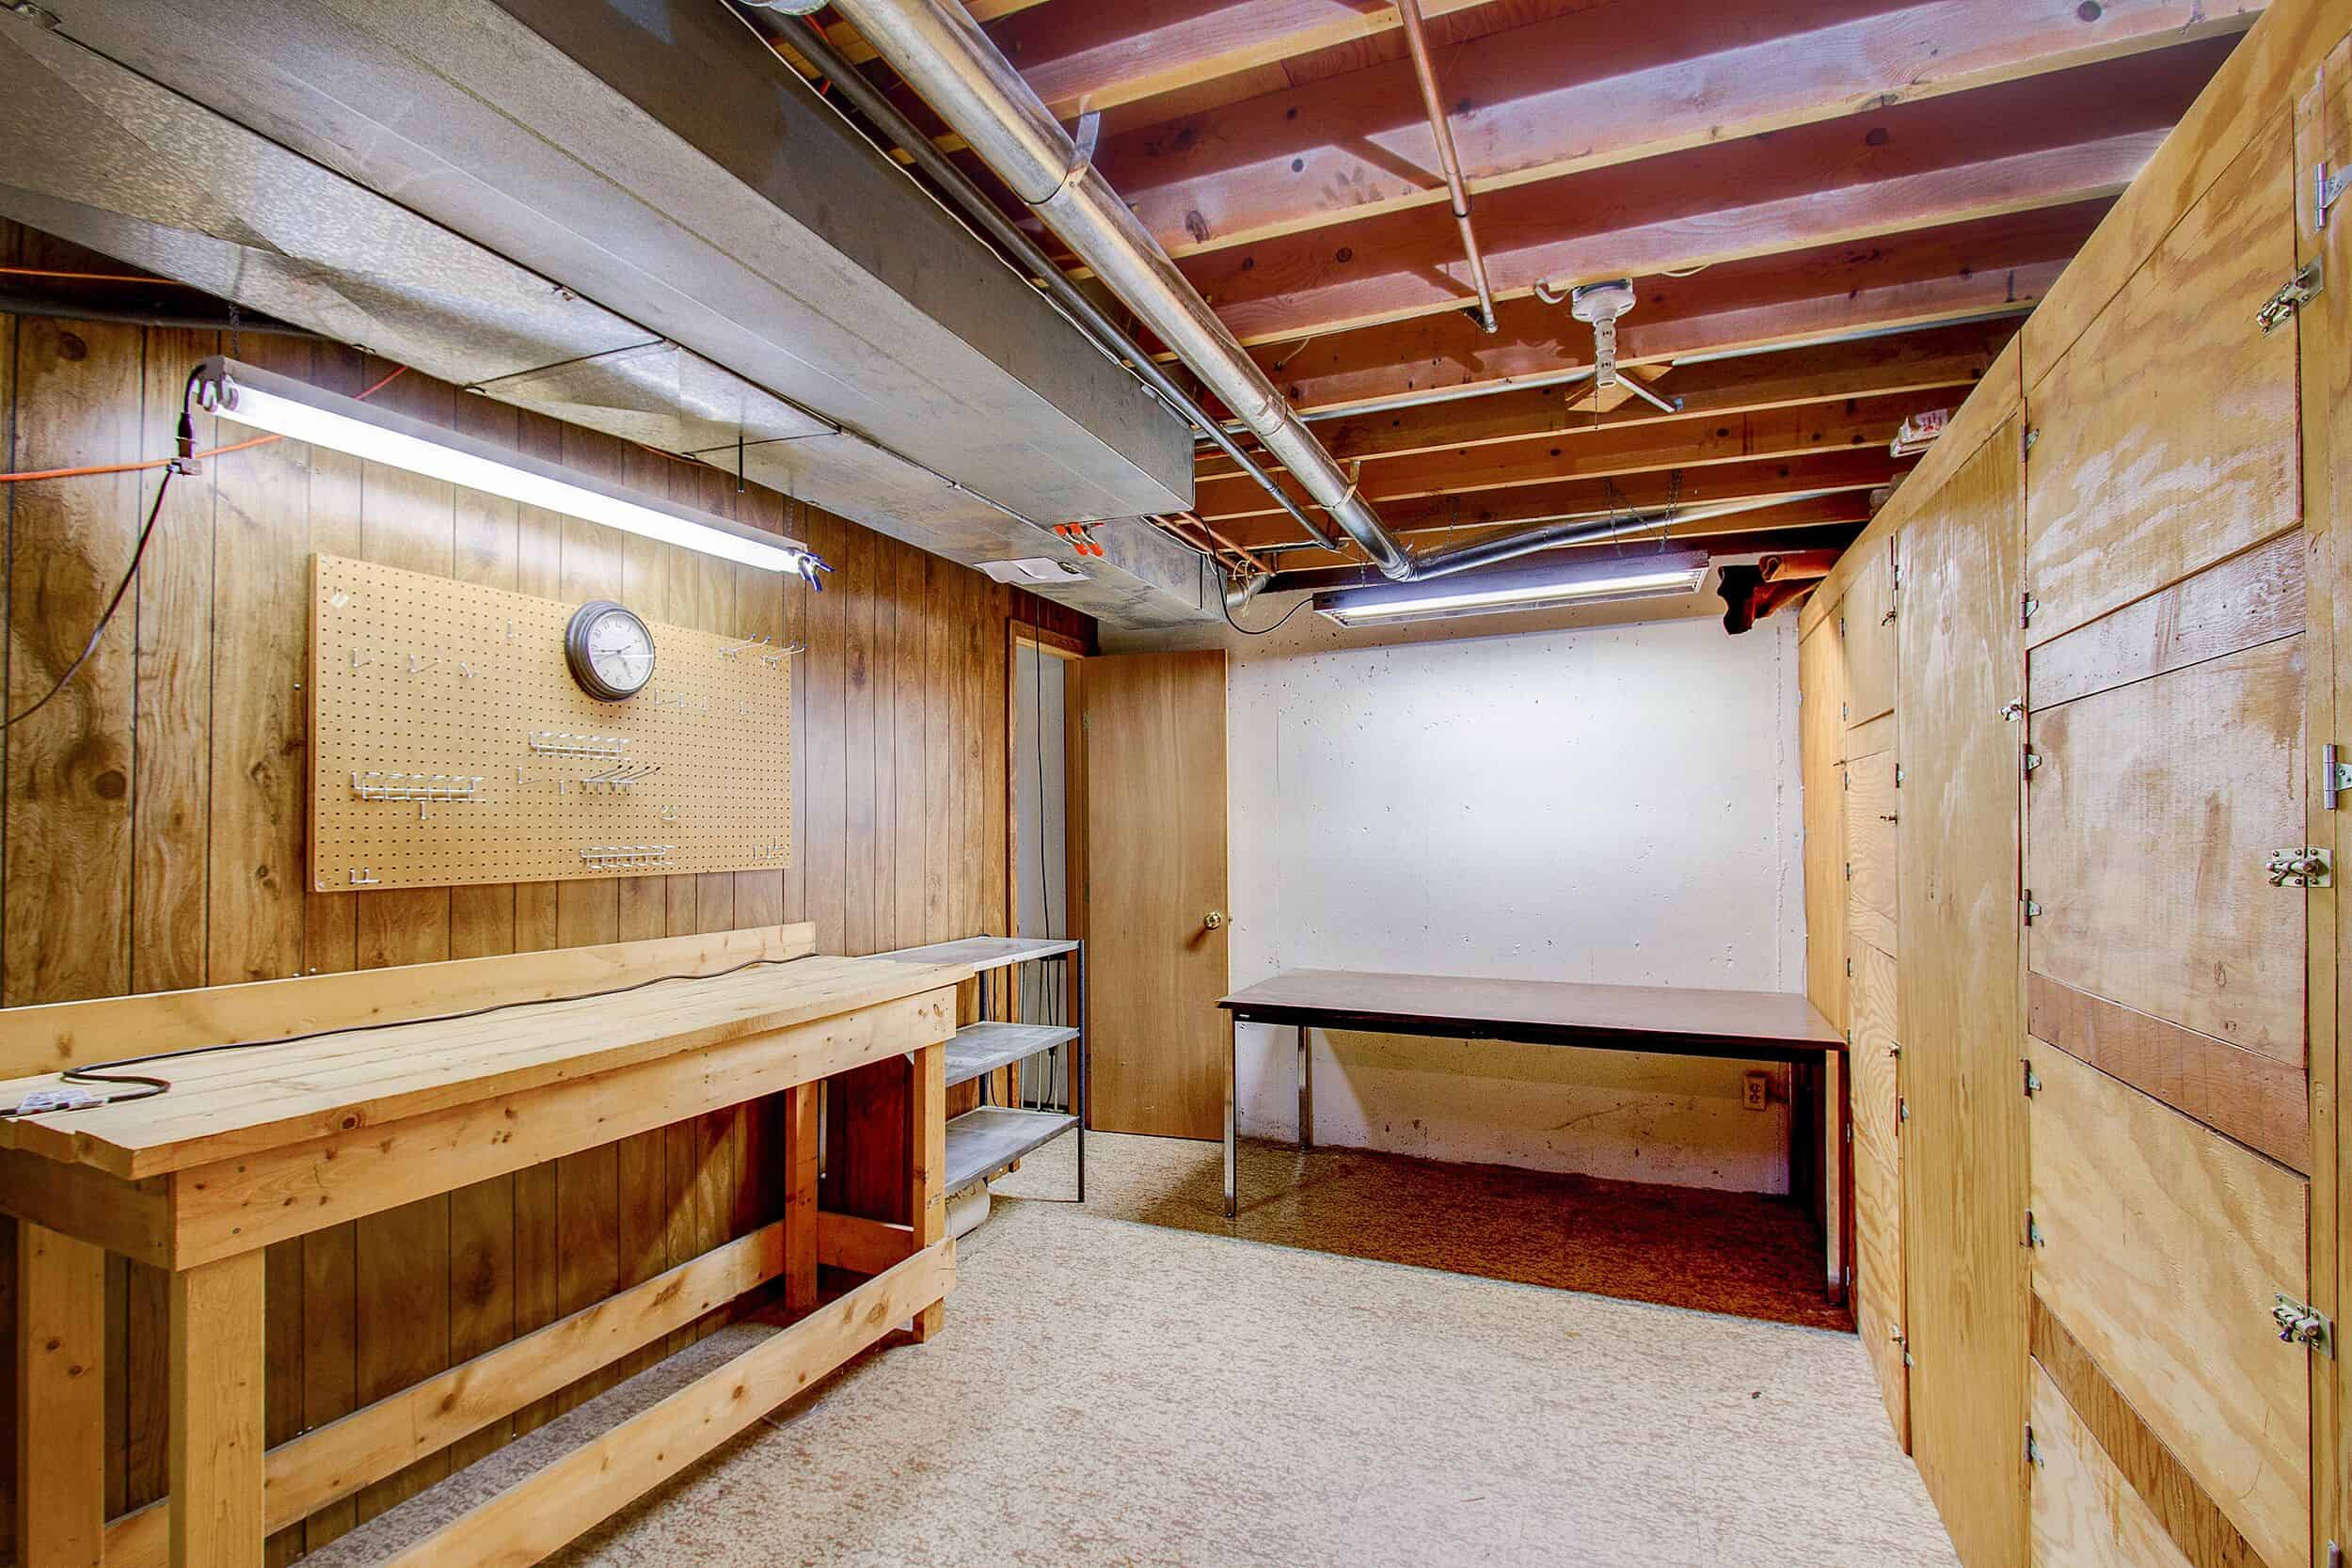 Basement Storage with Work Bench and Mechanical Room